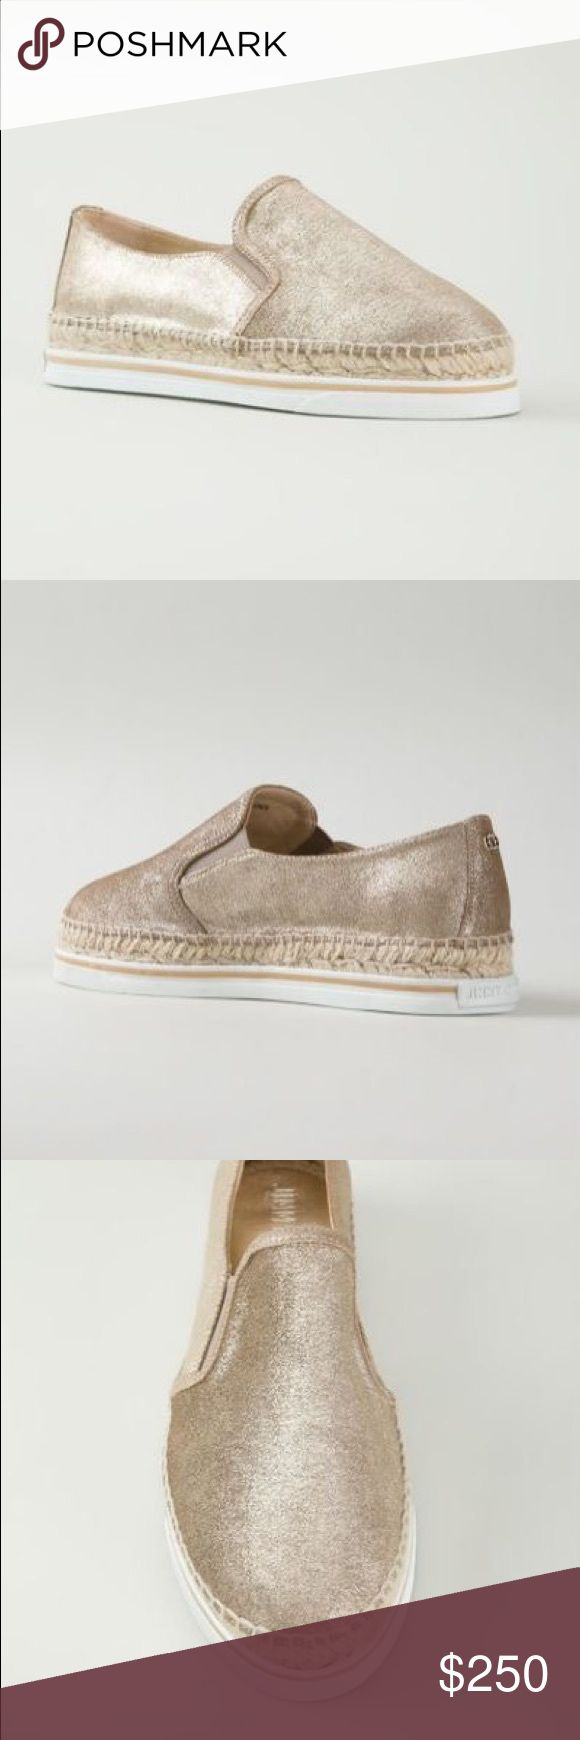 """Jimmy Choo Dawn Metallic Gold Espadrille Sneaker Jimmy Choo metallic embossed suede espadrille-style skate sneaker. 1"""" flat heel. Round toe. Stretch insets at notched vamp. Braided-jute midsole. Rubber outsole. Slip-on style. """"Dawn"""" is made in Italy. Jimmy Choo Shoes Espadrilles"""